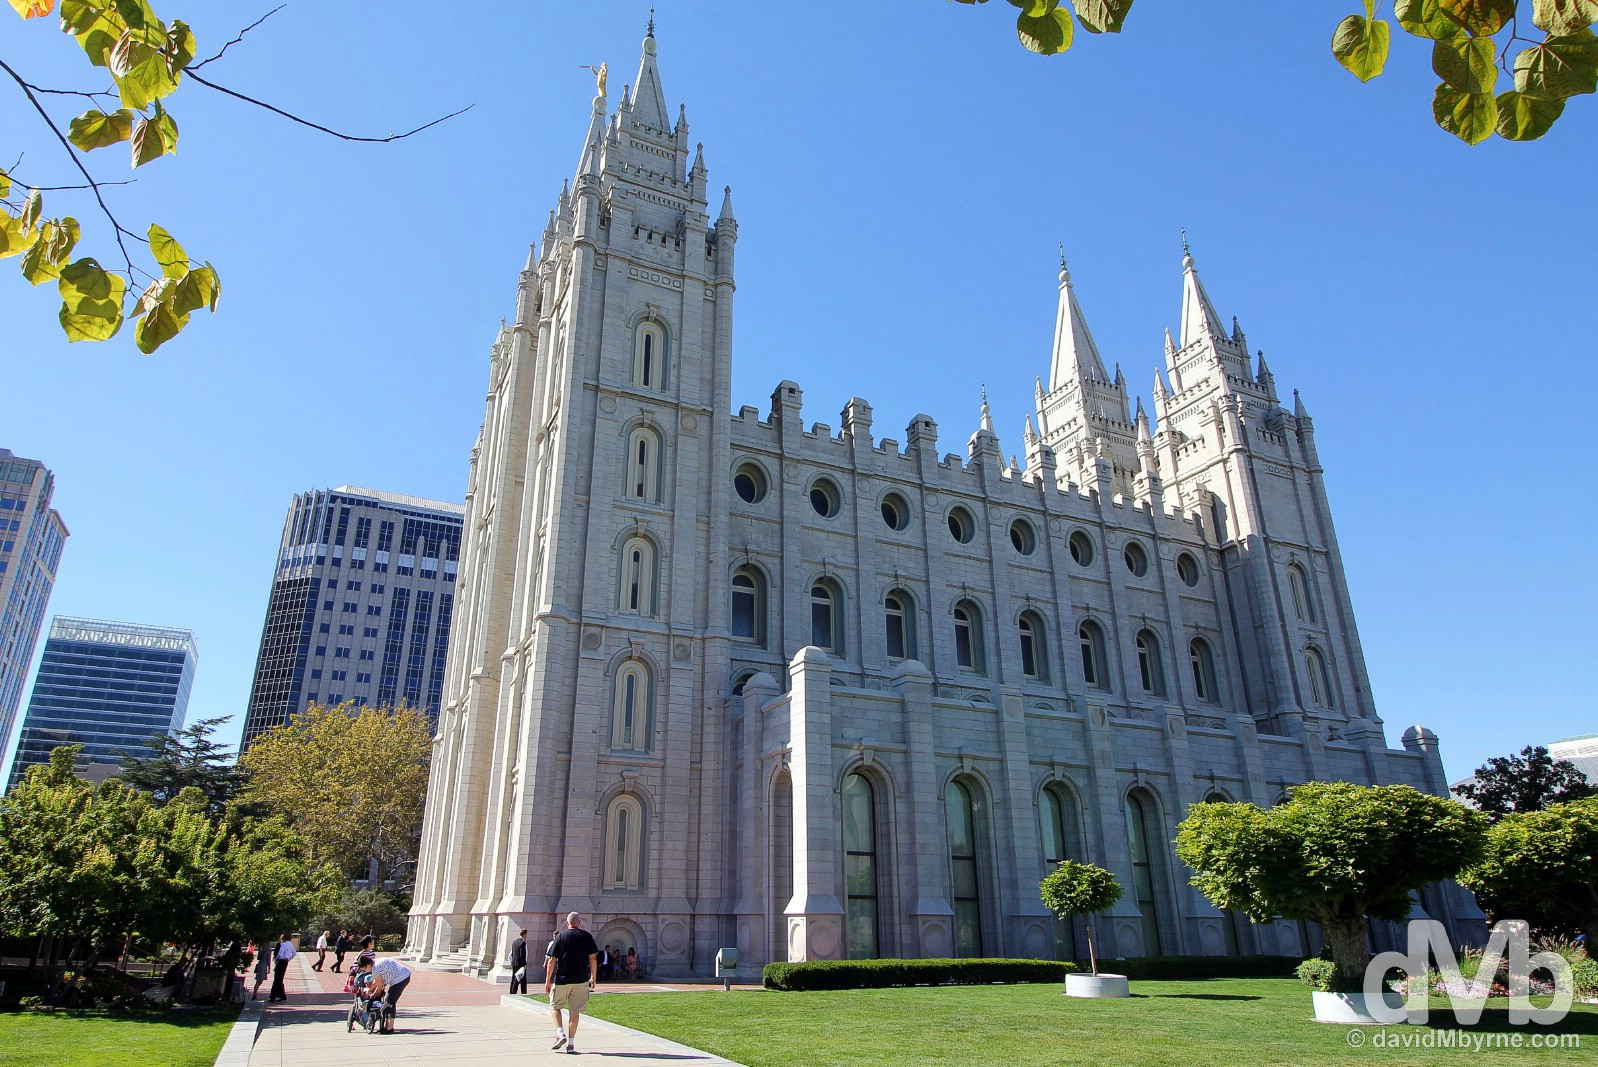 The Salt Lake Temple in Temple Square, Salt Lake City, Utah, USA. September 7, 2016.